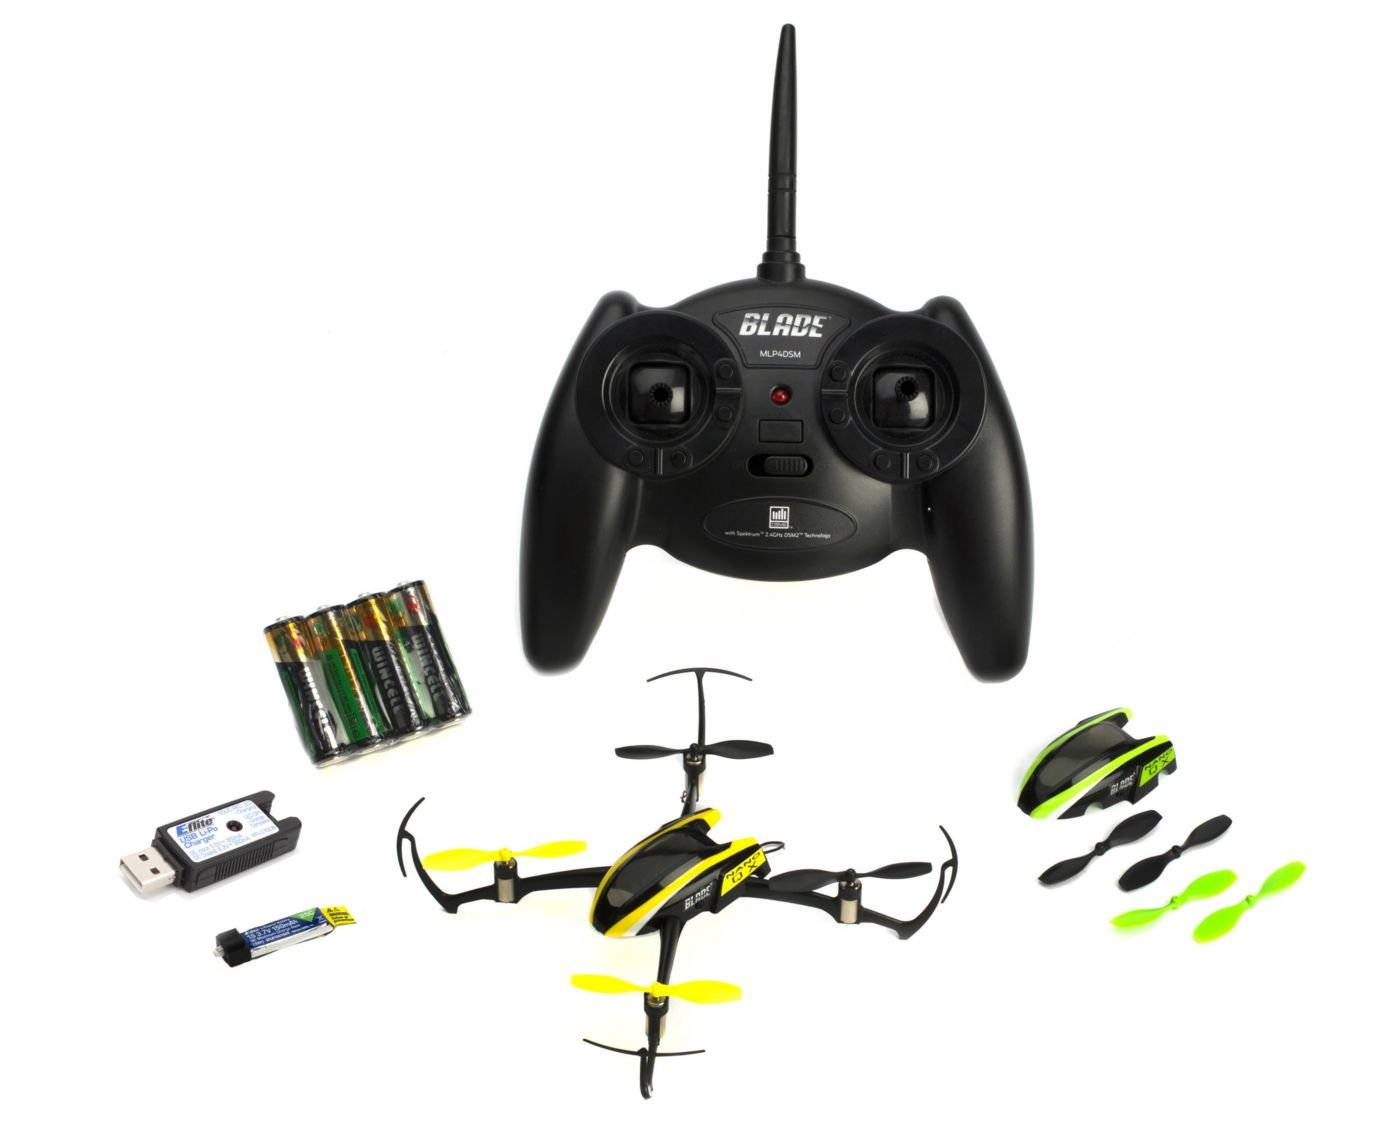 Start with this drone Blade Nano QX